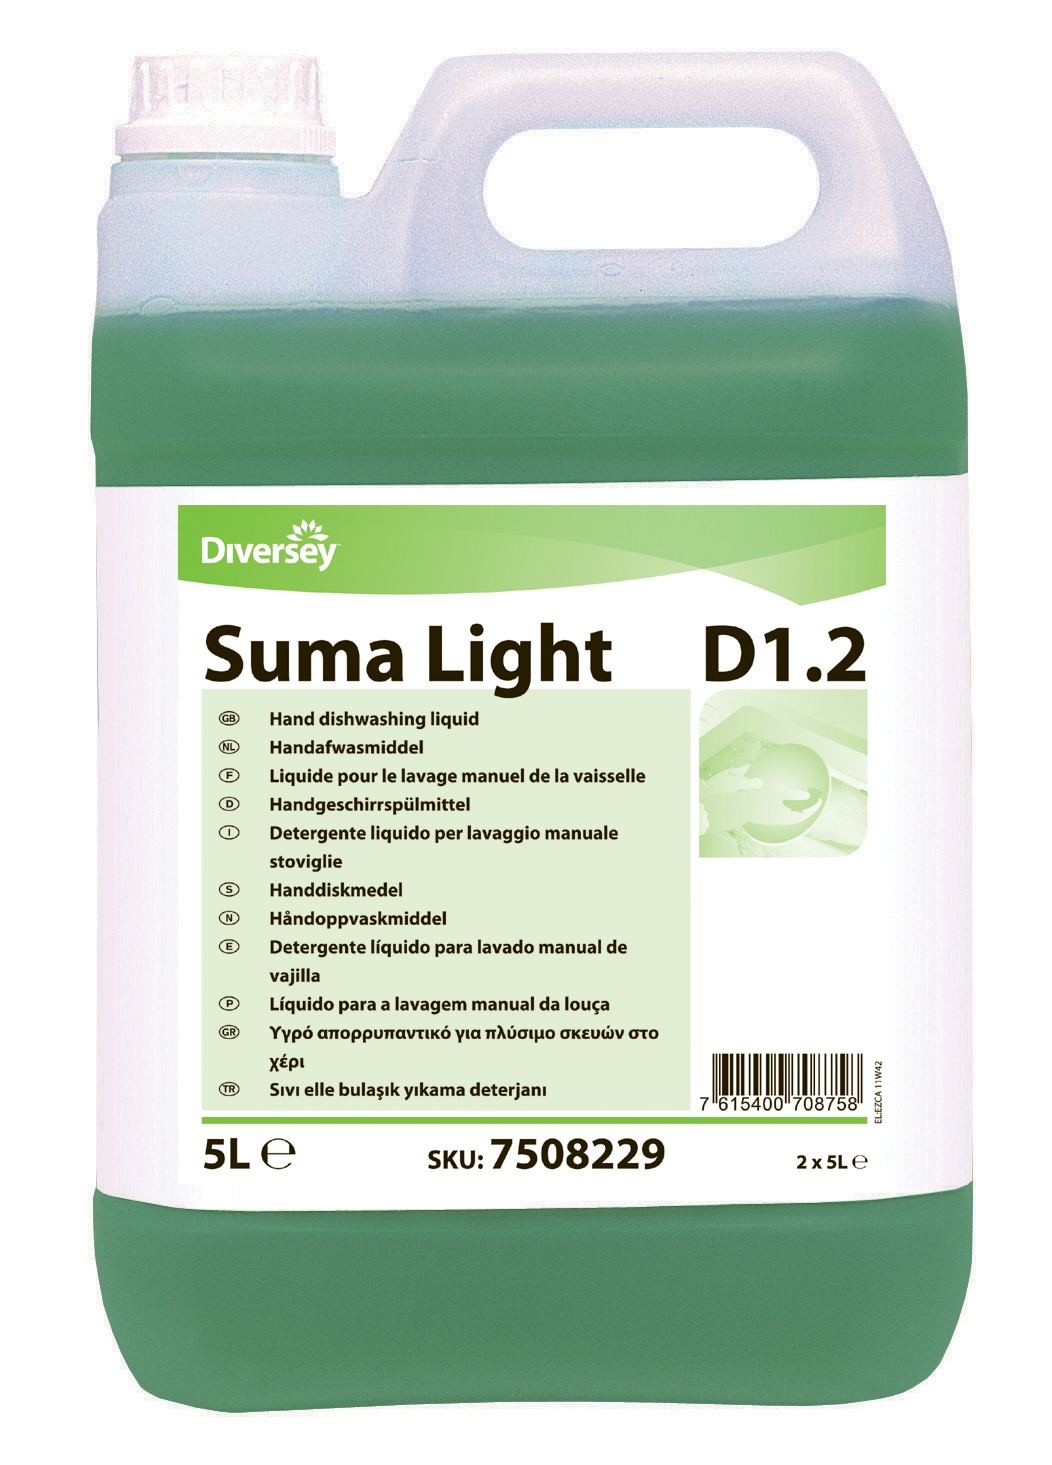 Suma Light D1 2 Johnson Diversey Vaisselle Manuelle 2 X 5 L